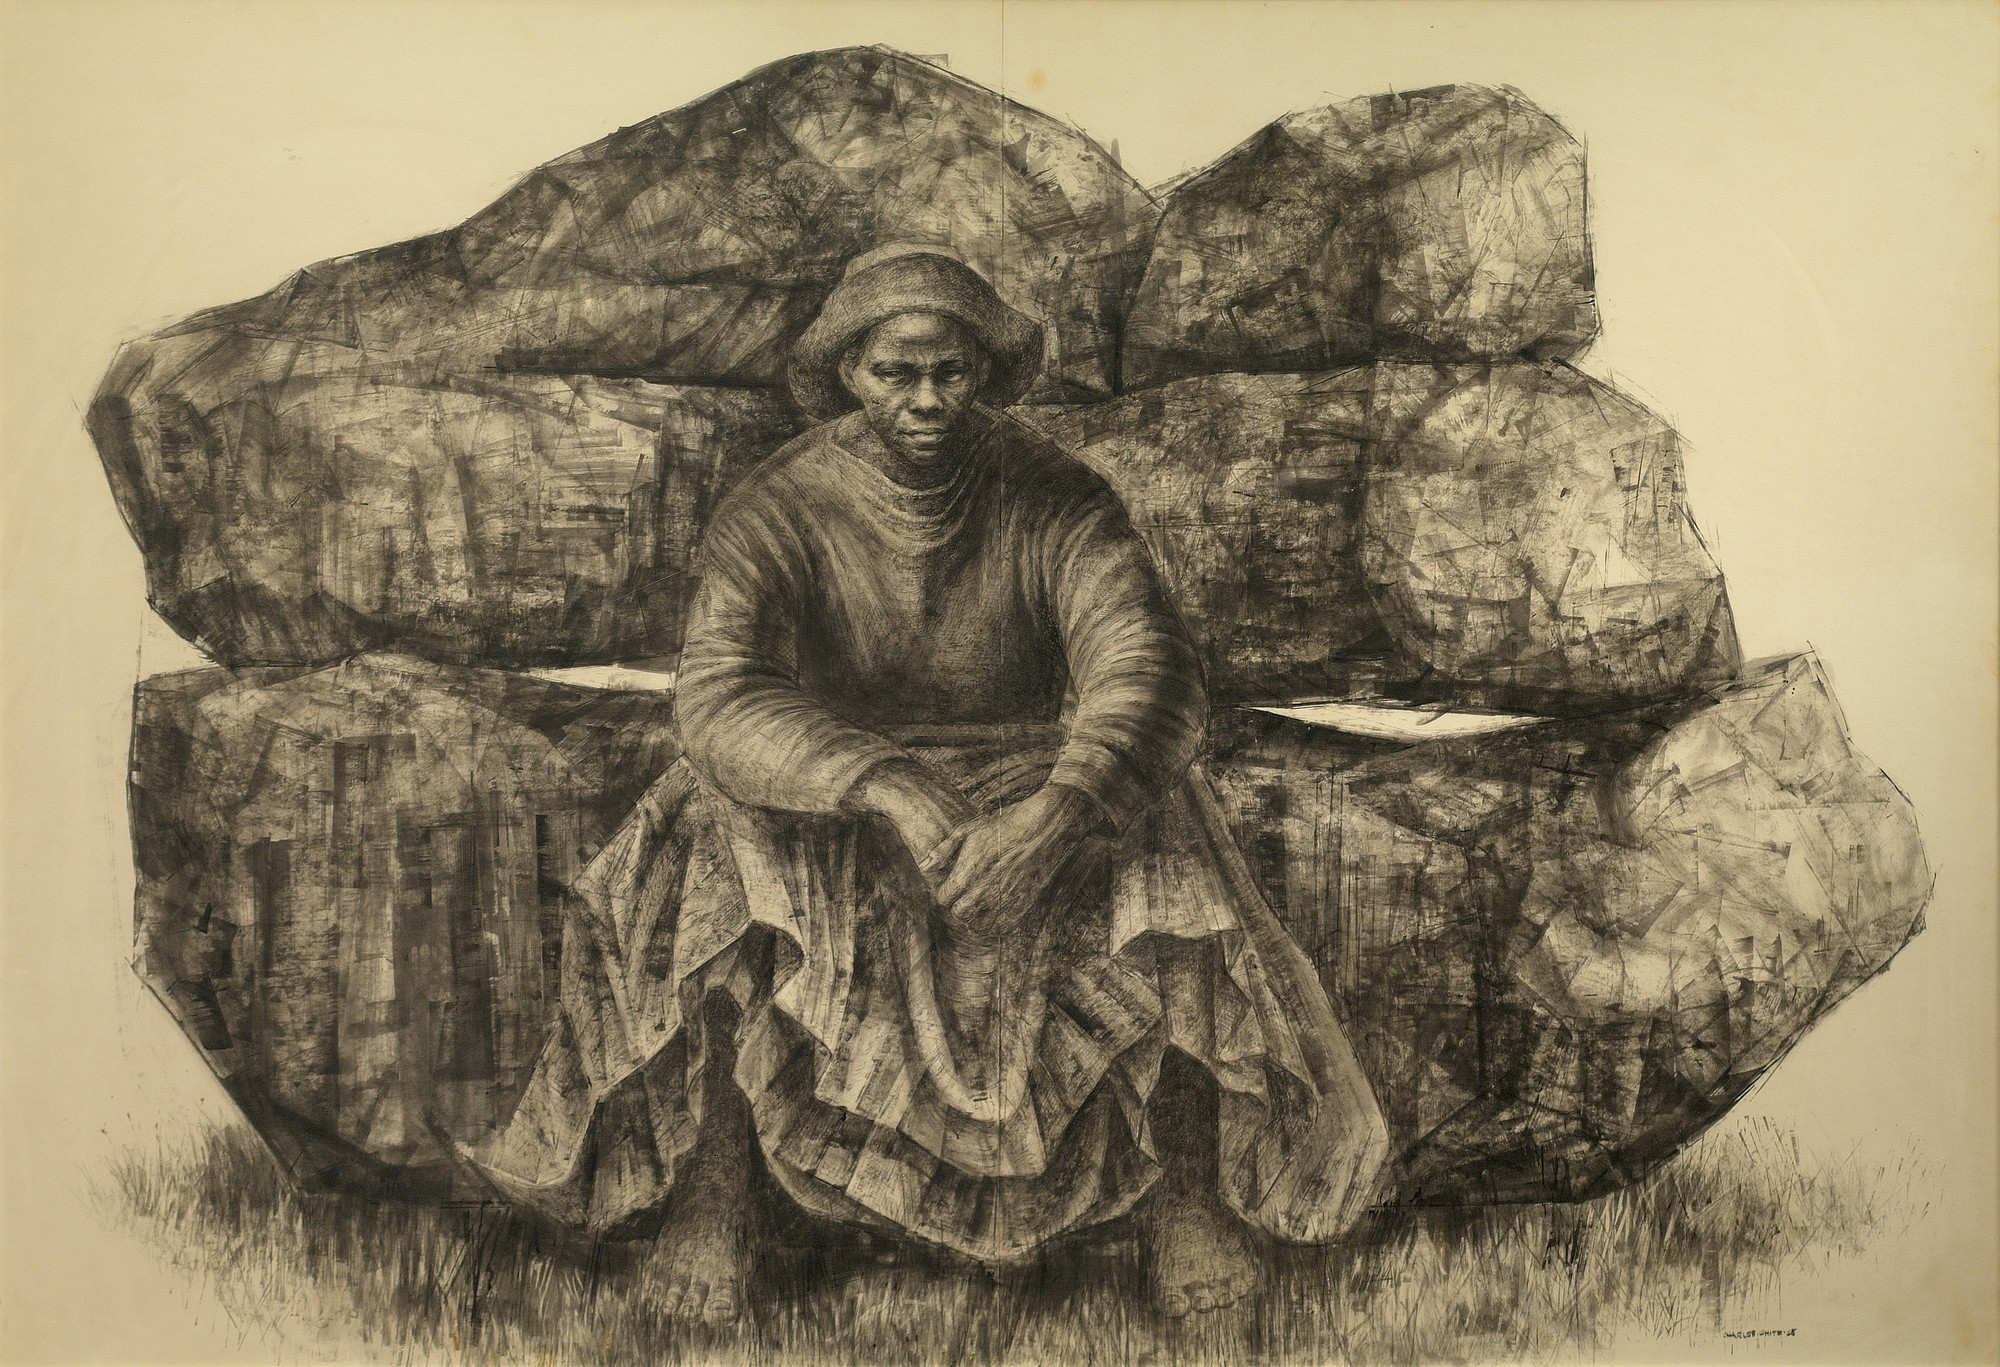 "Charles White. _General Moses (Harriet Tubman)_. 1965. Ink on paper, 47 × 68"" (119.4 × 172.7 cm). Private collection. © The Charles White Archives/ Courtesy of Swann Auction Galleries"